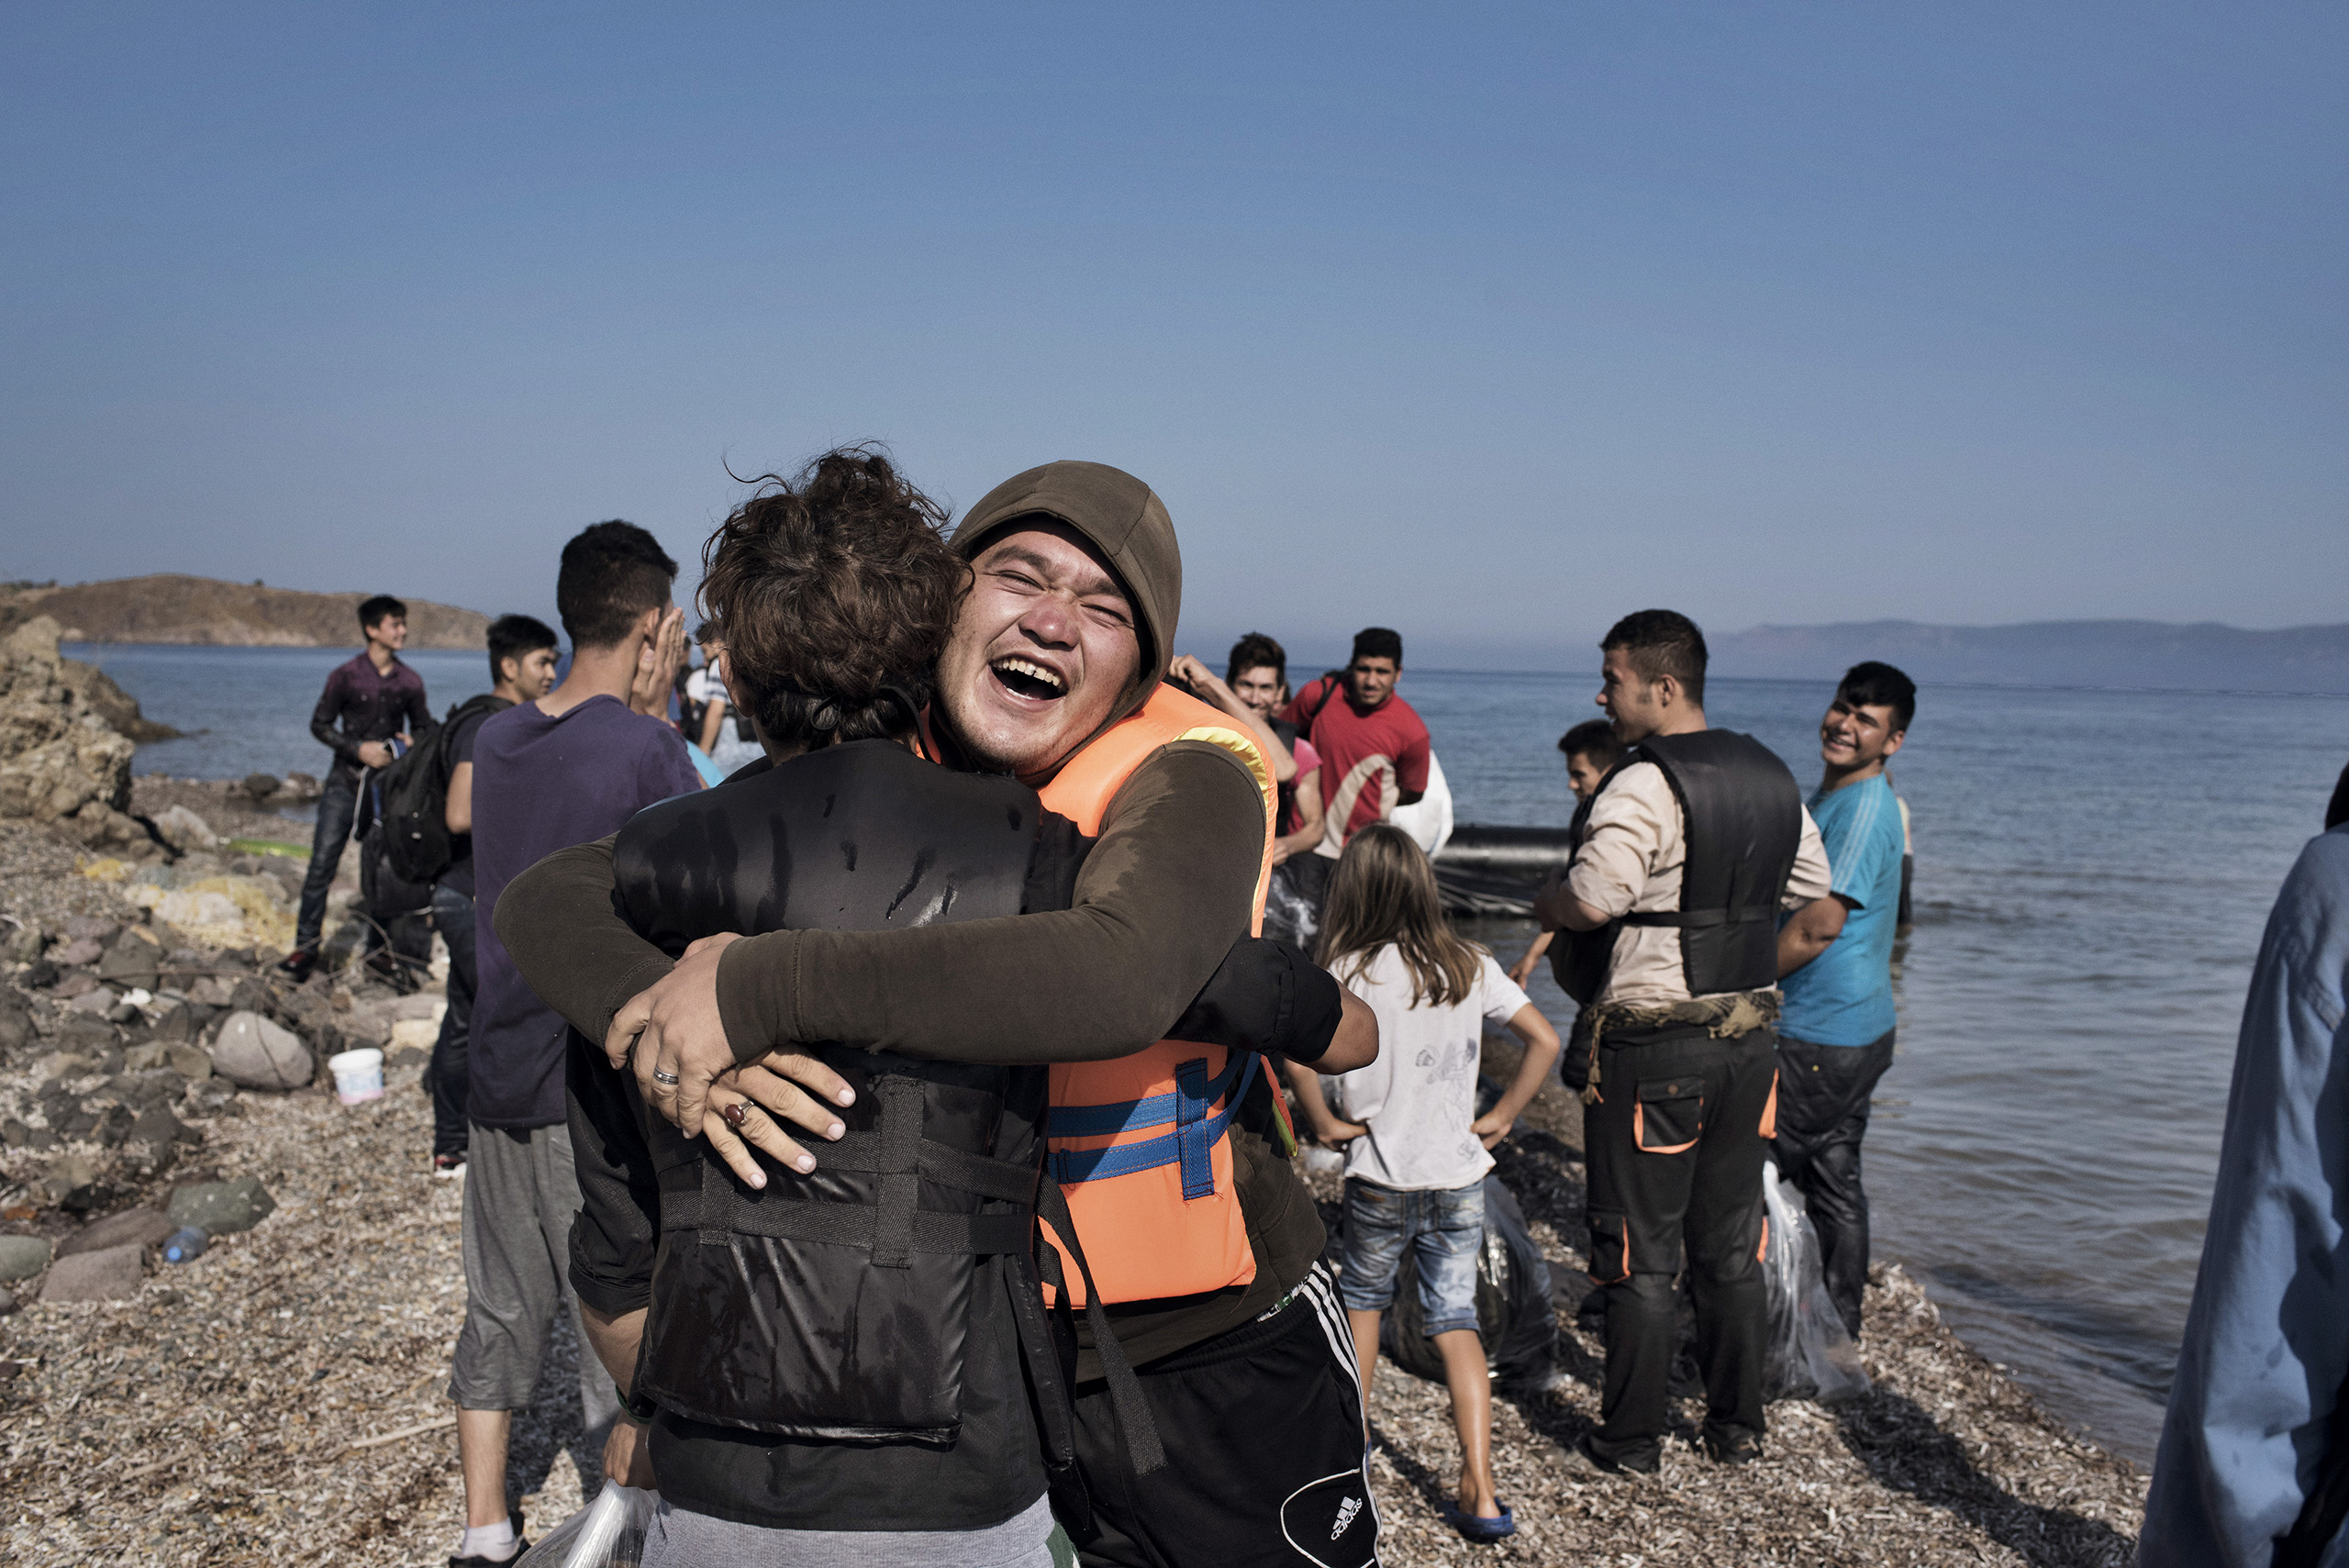 Migrants from Afghanistan rejoice after crossing safely by boat from Turkey to the Greek island of Lesbos, the first piece of European land they reached on their journey to claim asylum in Germany and other wealthy European nations.